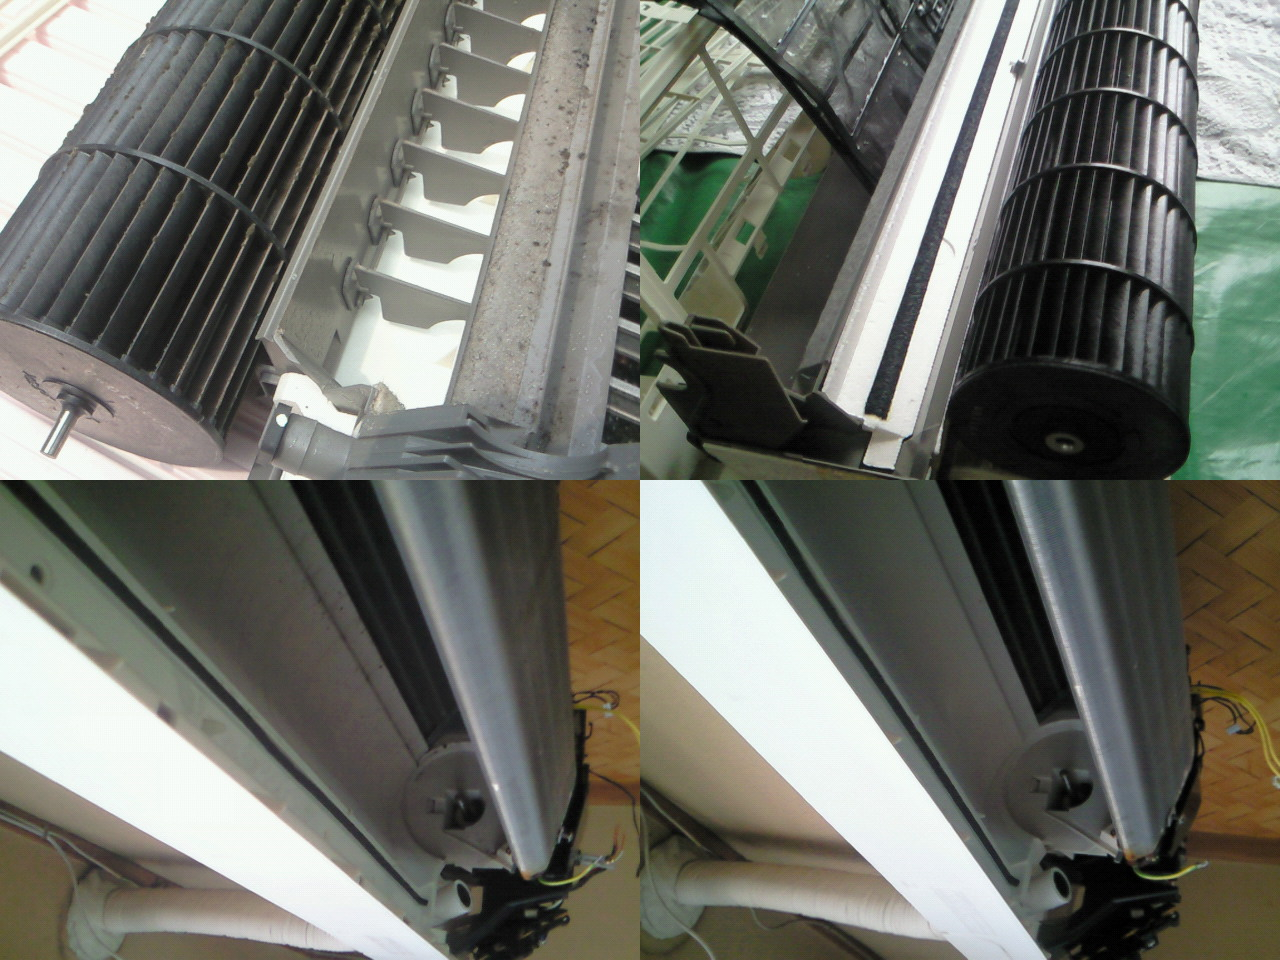 http://ajras.net/images/110610-aircon1.jpg